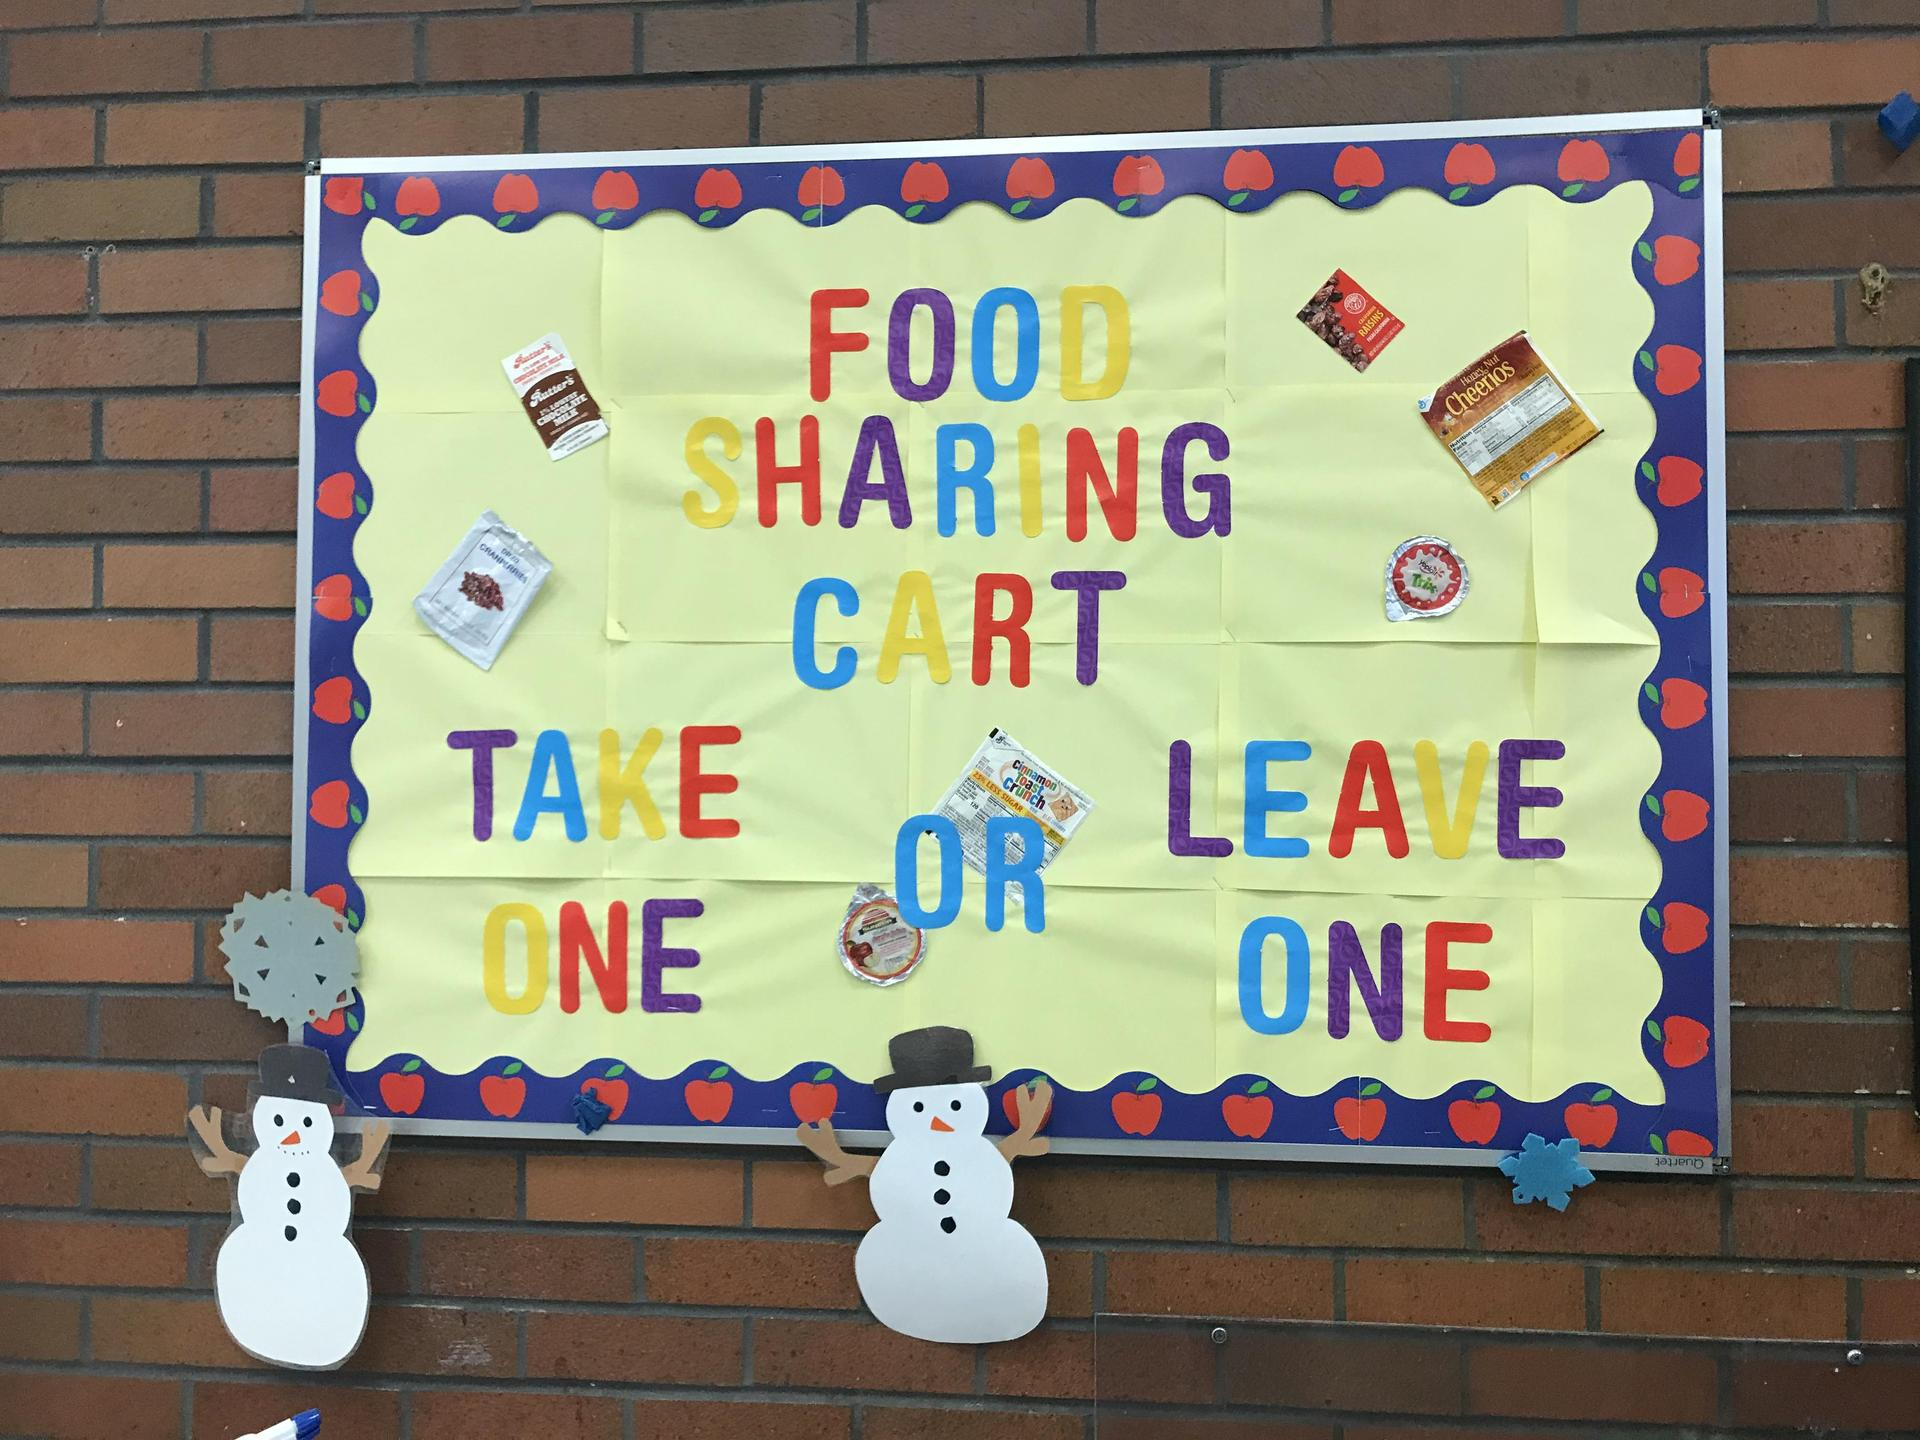 Share table sign created by Rush Cafeteria.